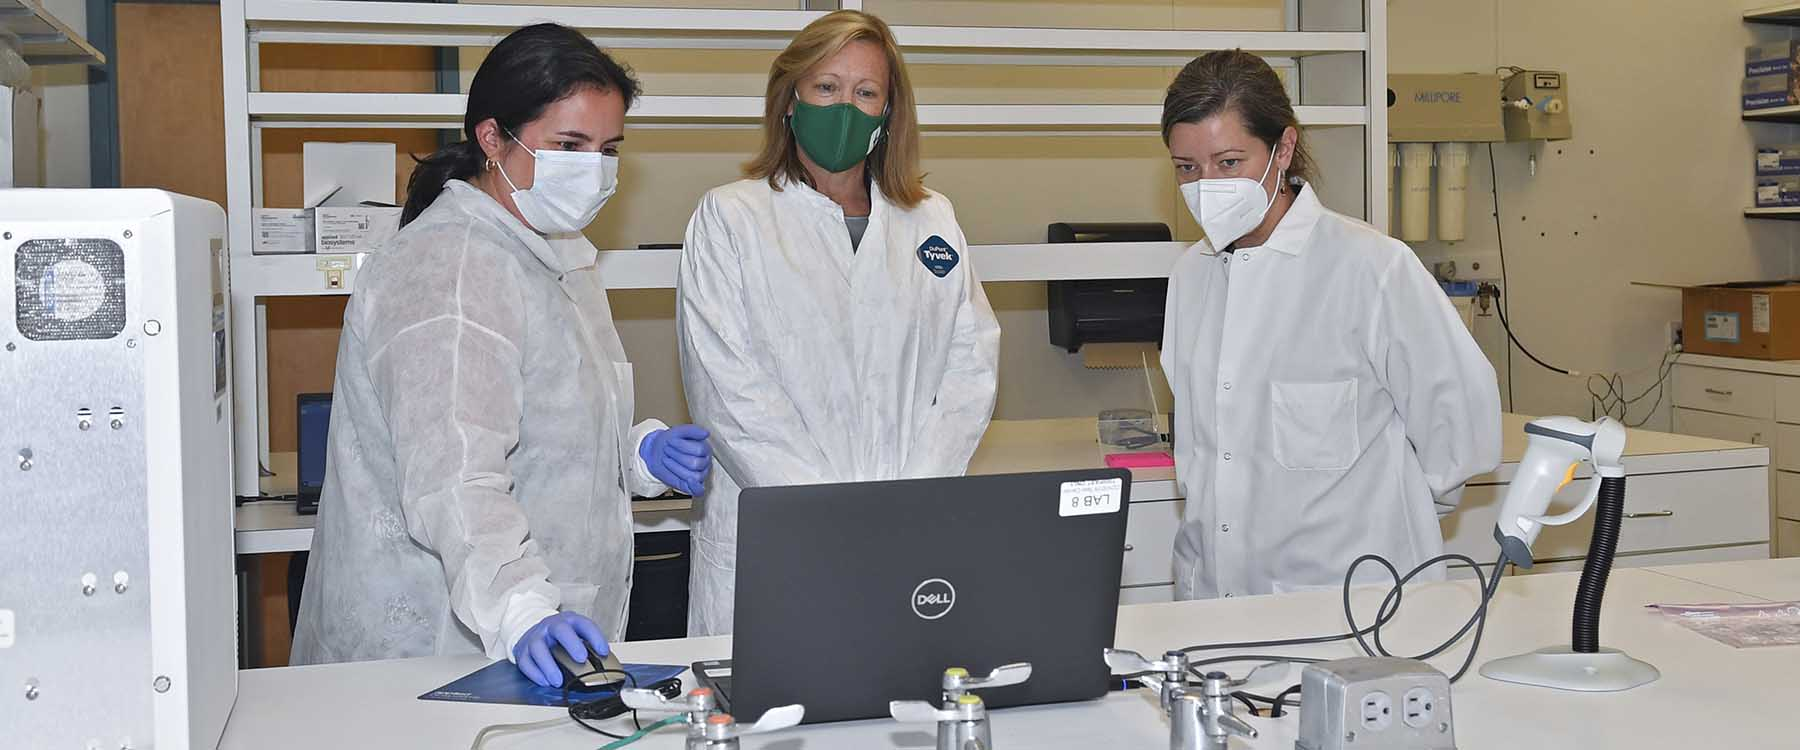 ampus lab for processing COVID-19 tests proves critical to effort for tracking, testing and tracing coronavirus